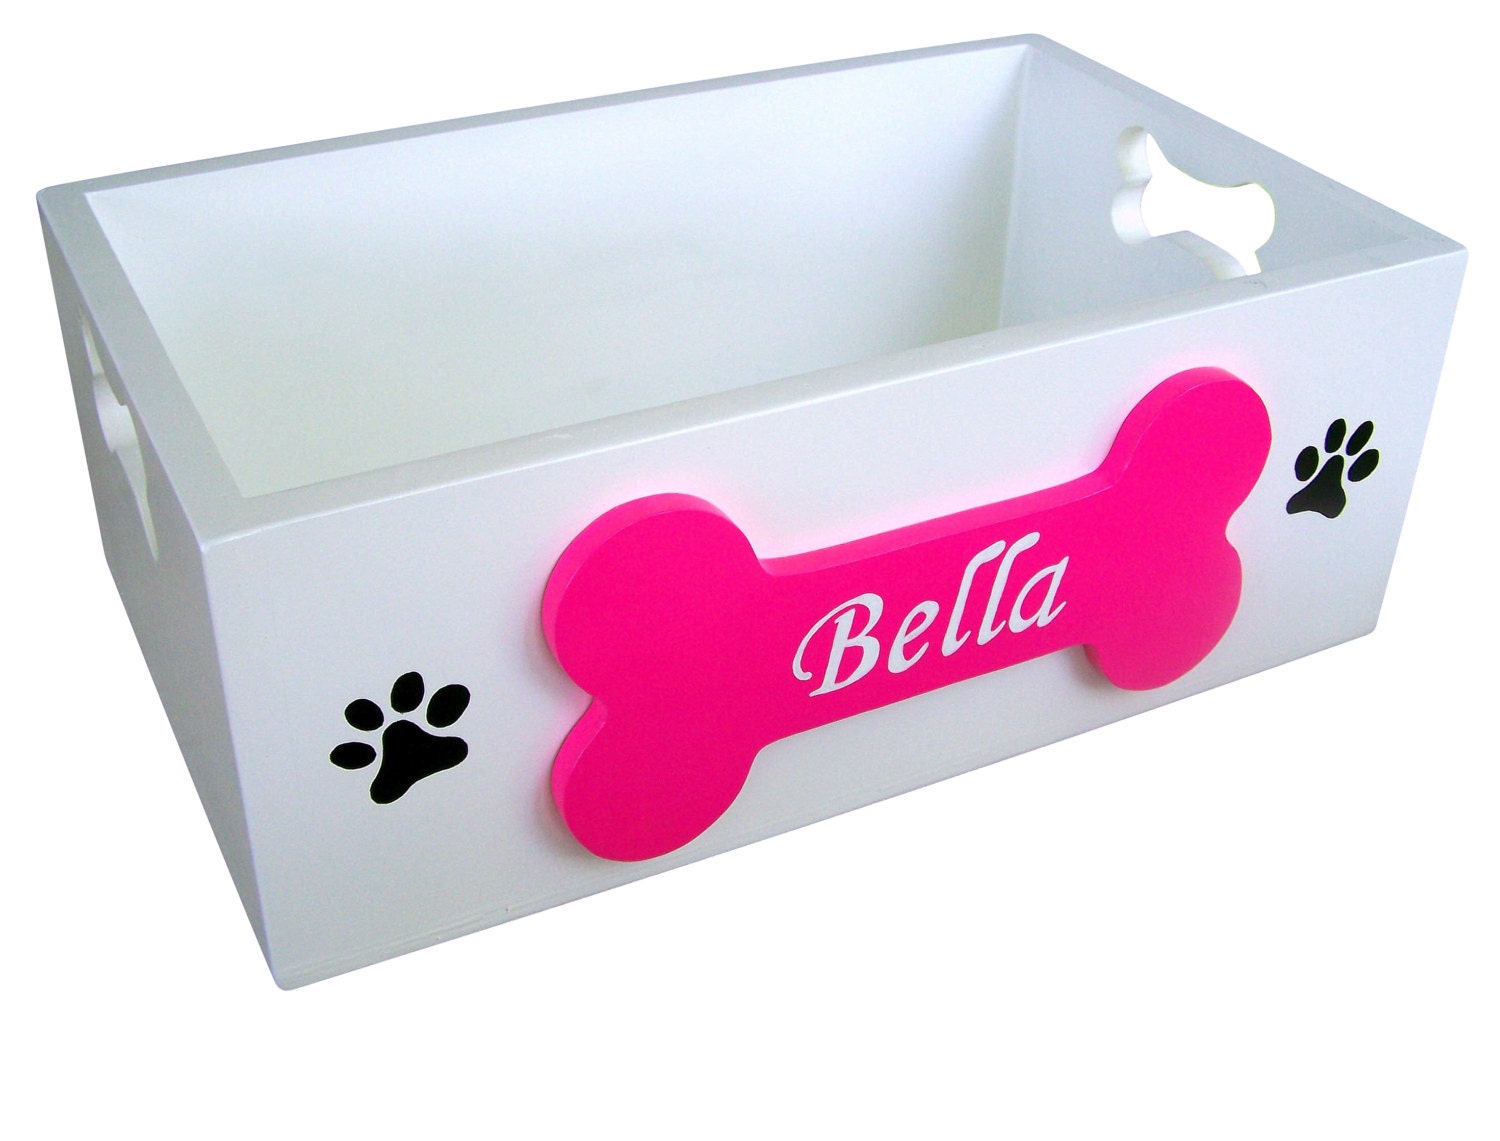 Painted Wooden Dog Toy Storage Box by SassyFrassStudio on Etsy